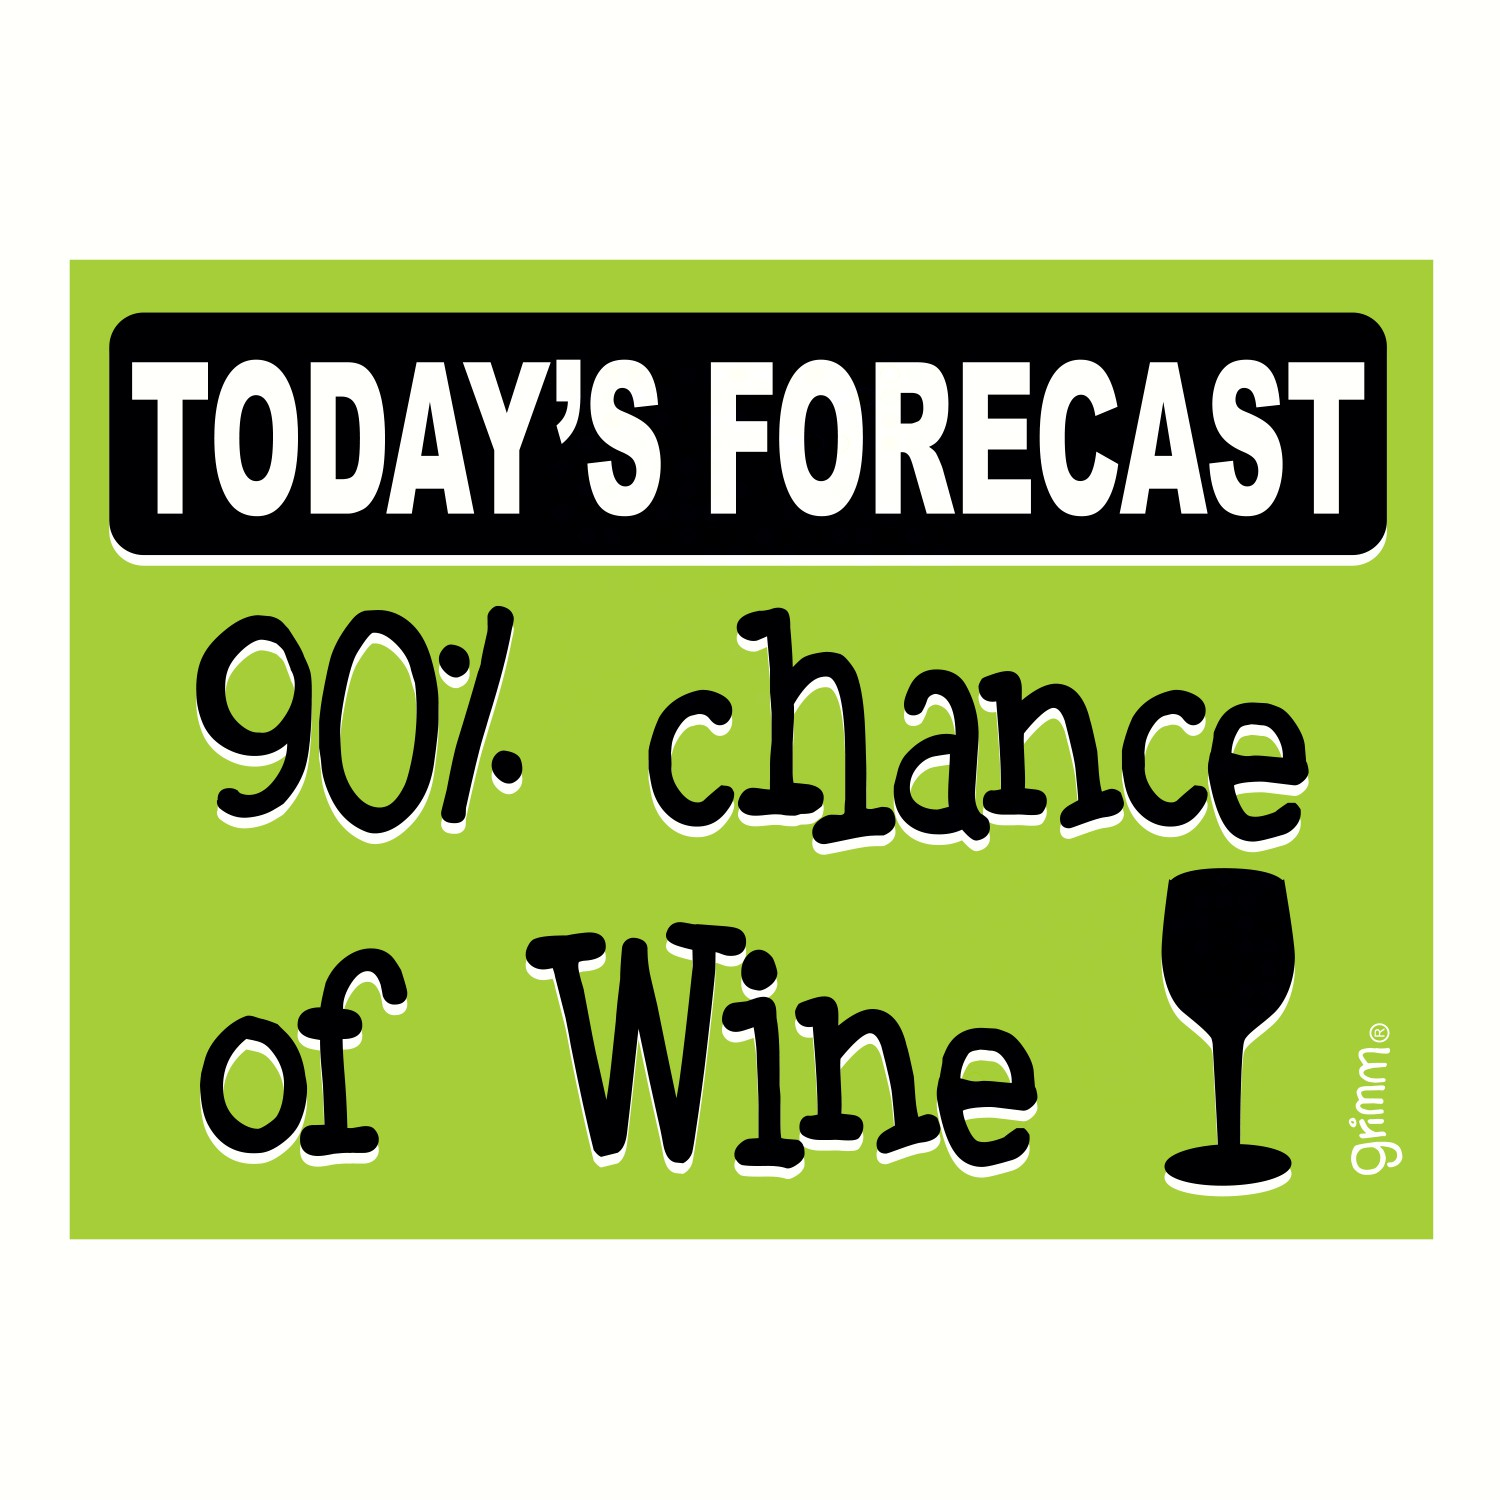 Magnet, Humorous Saying, Today's Forecast 90 percent chance of Wine